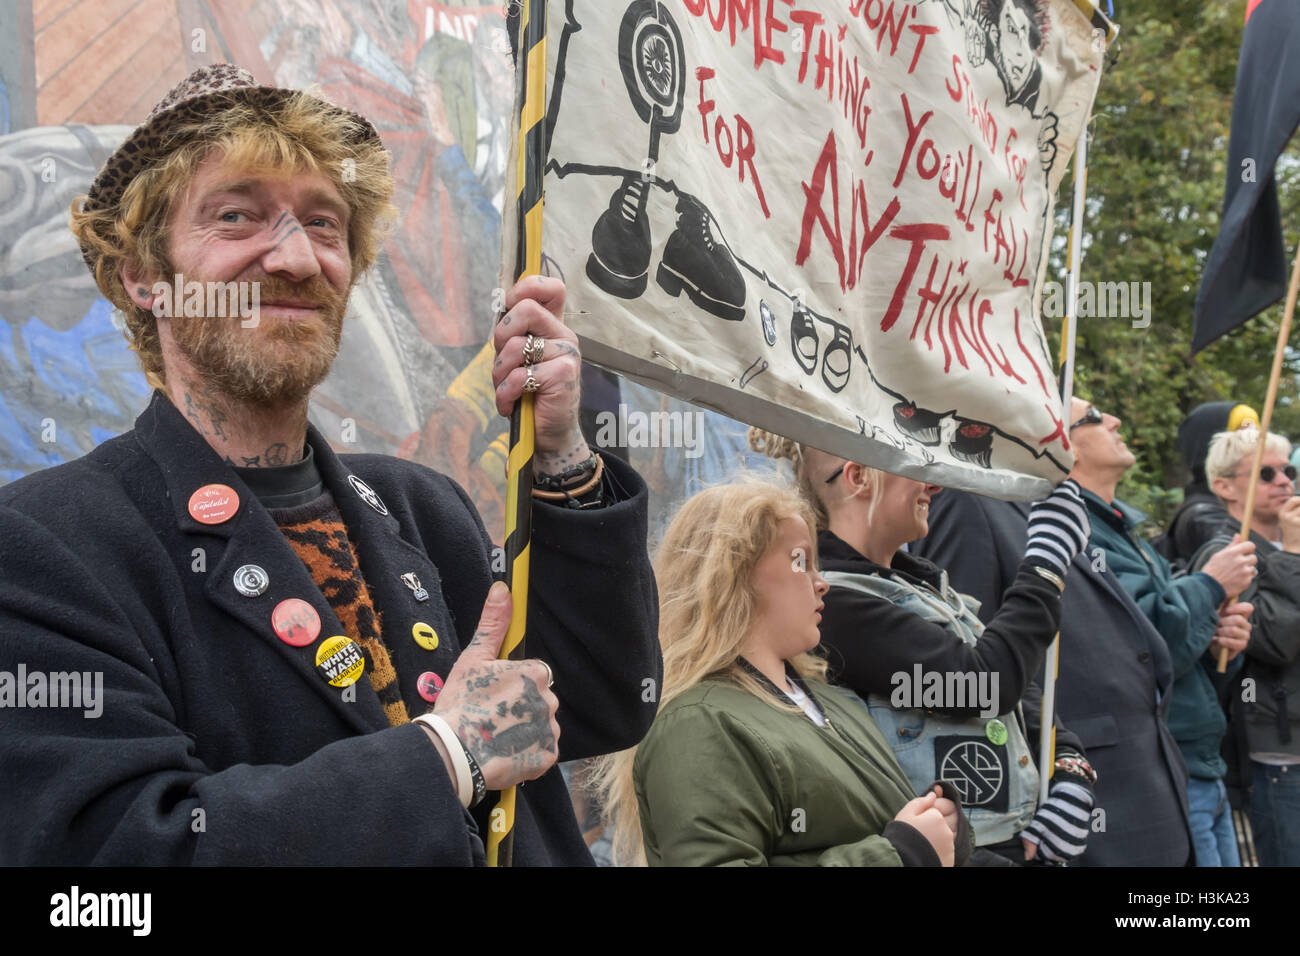 London, UK. 9th October 2016. Class War with banners in front of the Cable Street mural as marchers arrive. Class - Stock Image